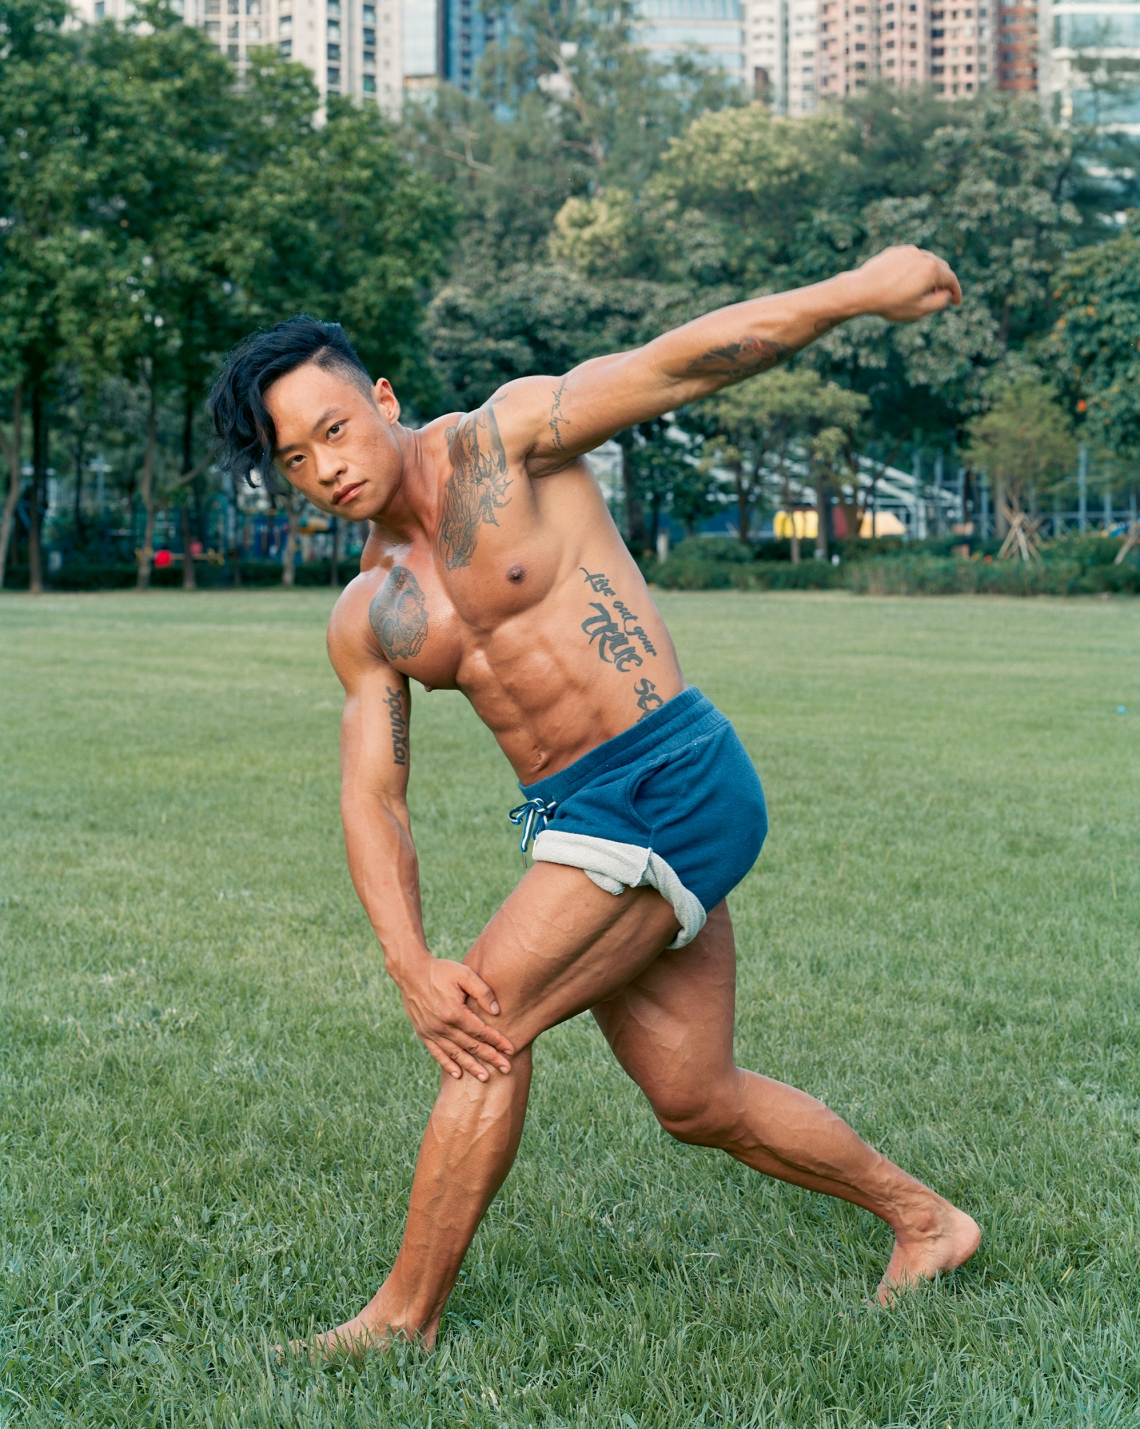 Victoria Park, Causeway Bay;   Siu Fung Law is a gender-queer bodybuilder, an educator, transgender scholar, genderqueer advocate and trans advocate, and active in the LGBTQ community. They identify Siu Fung as gender-non-conforming.